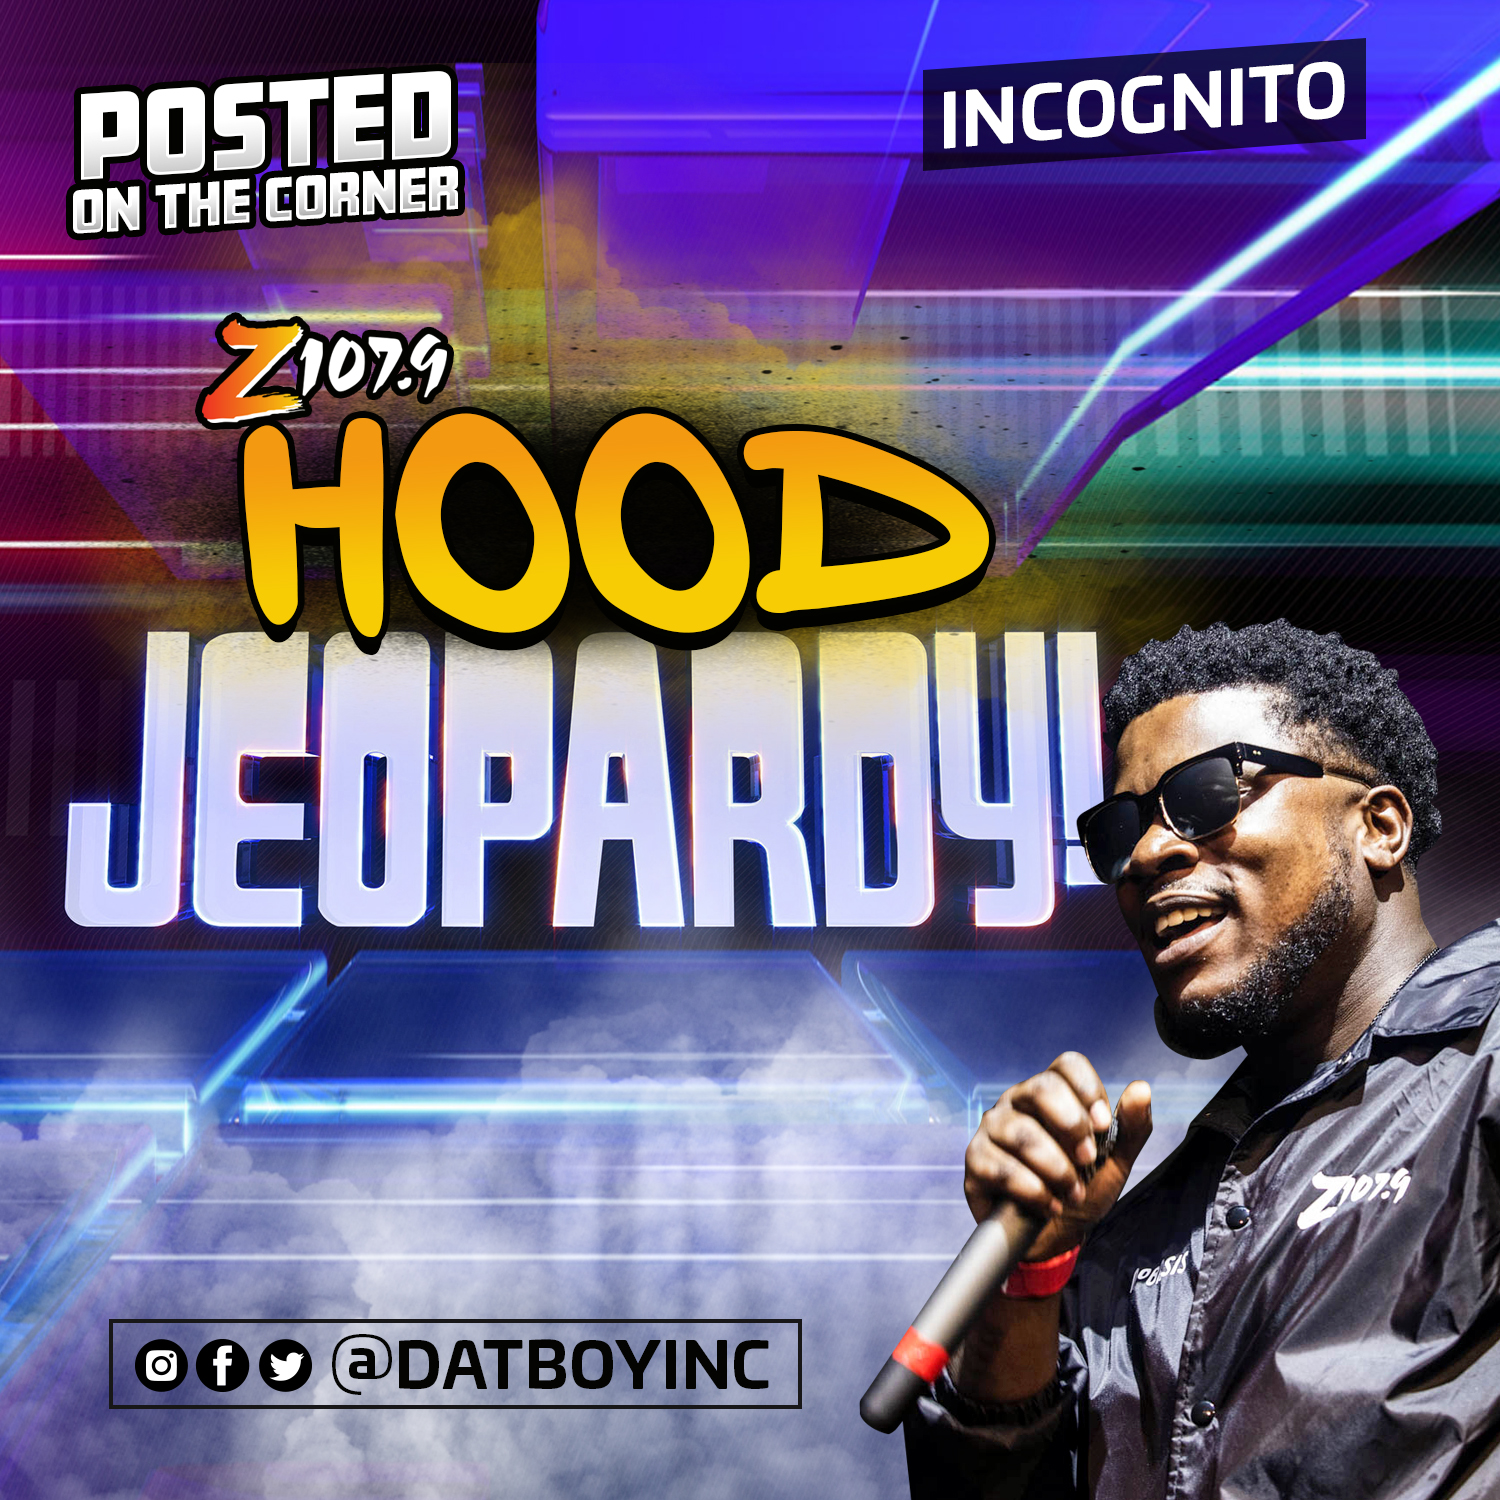 INCOGNITO POSTED ON THE CORNER Z1079